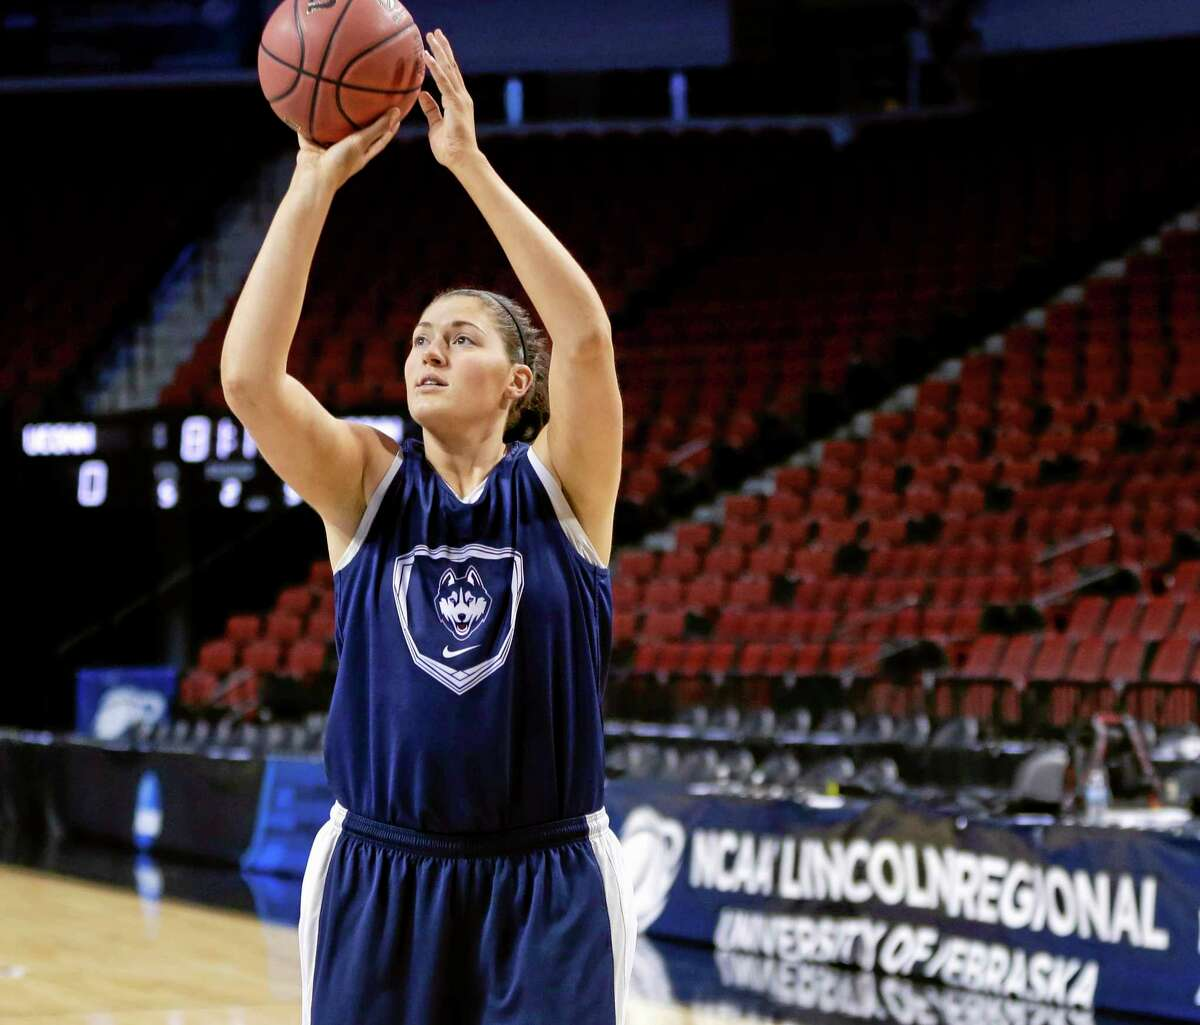 UConn's Stefanie Dolson shoots during practice in Lincoln, Neb., for Saturday's game against BYU.